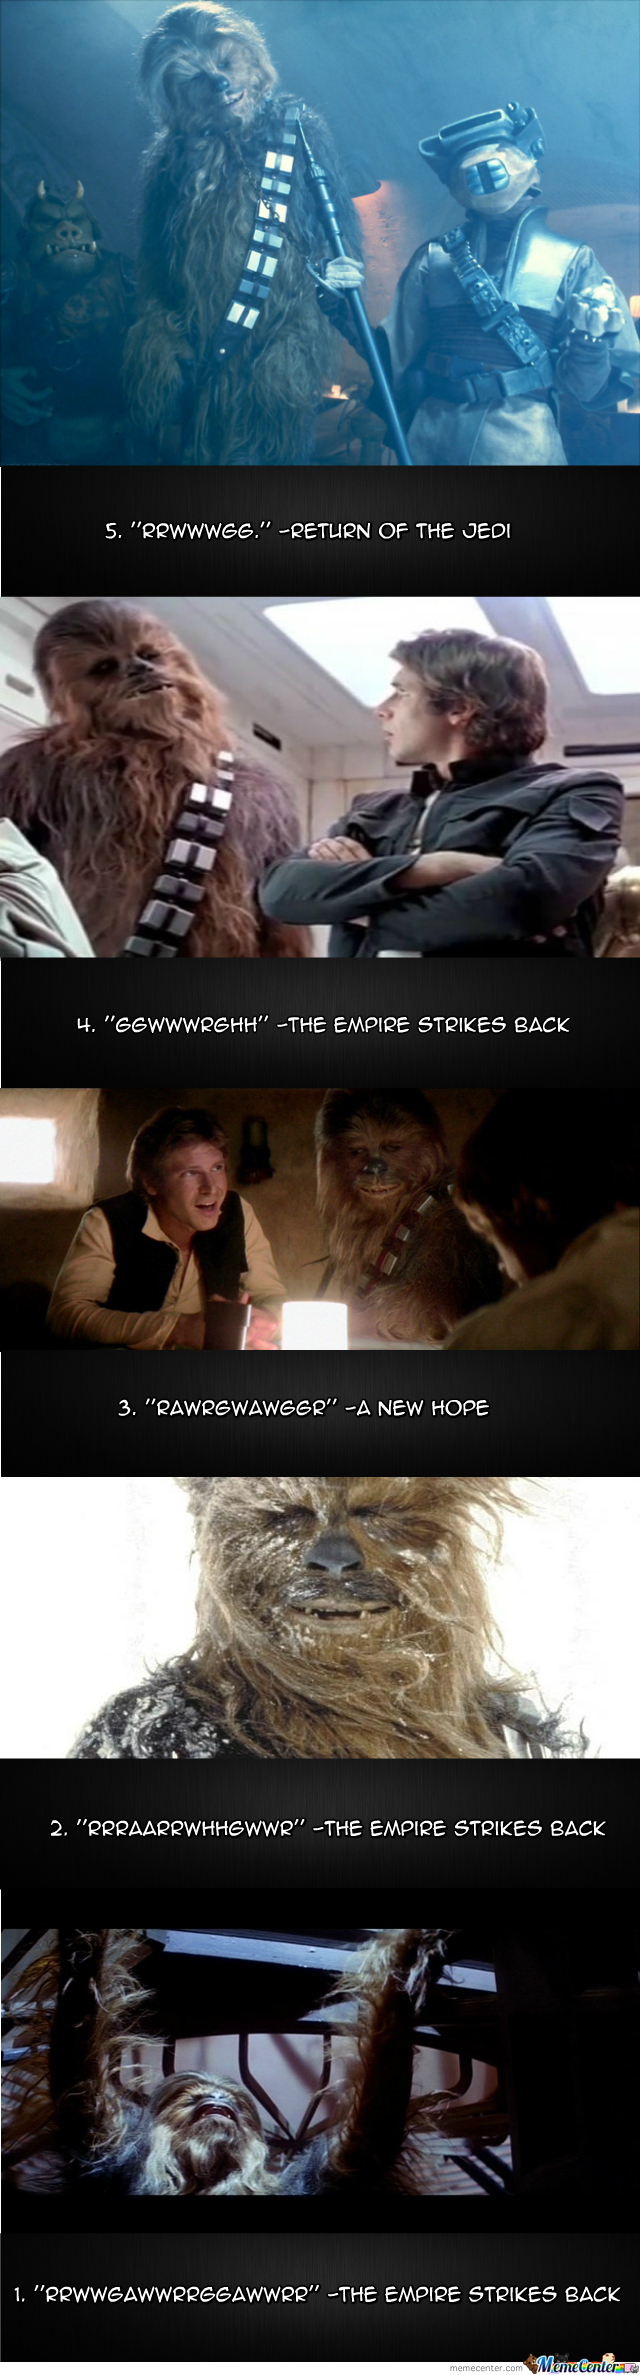 Top 5 Chewbacca Quotes